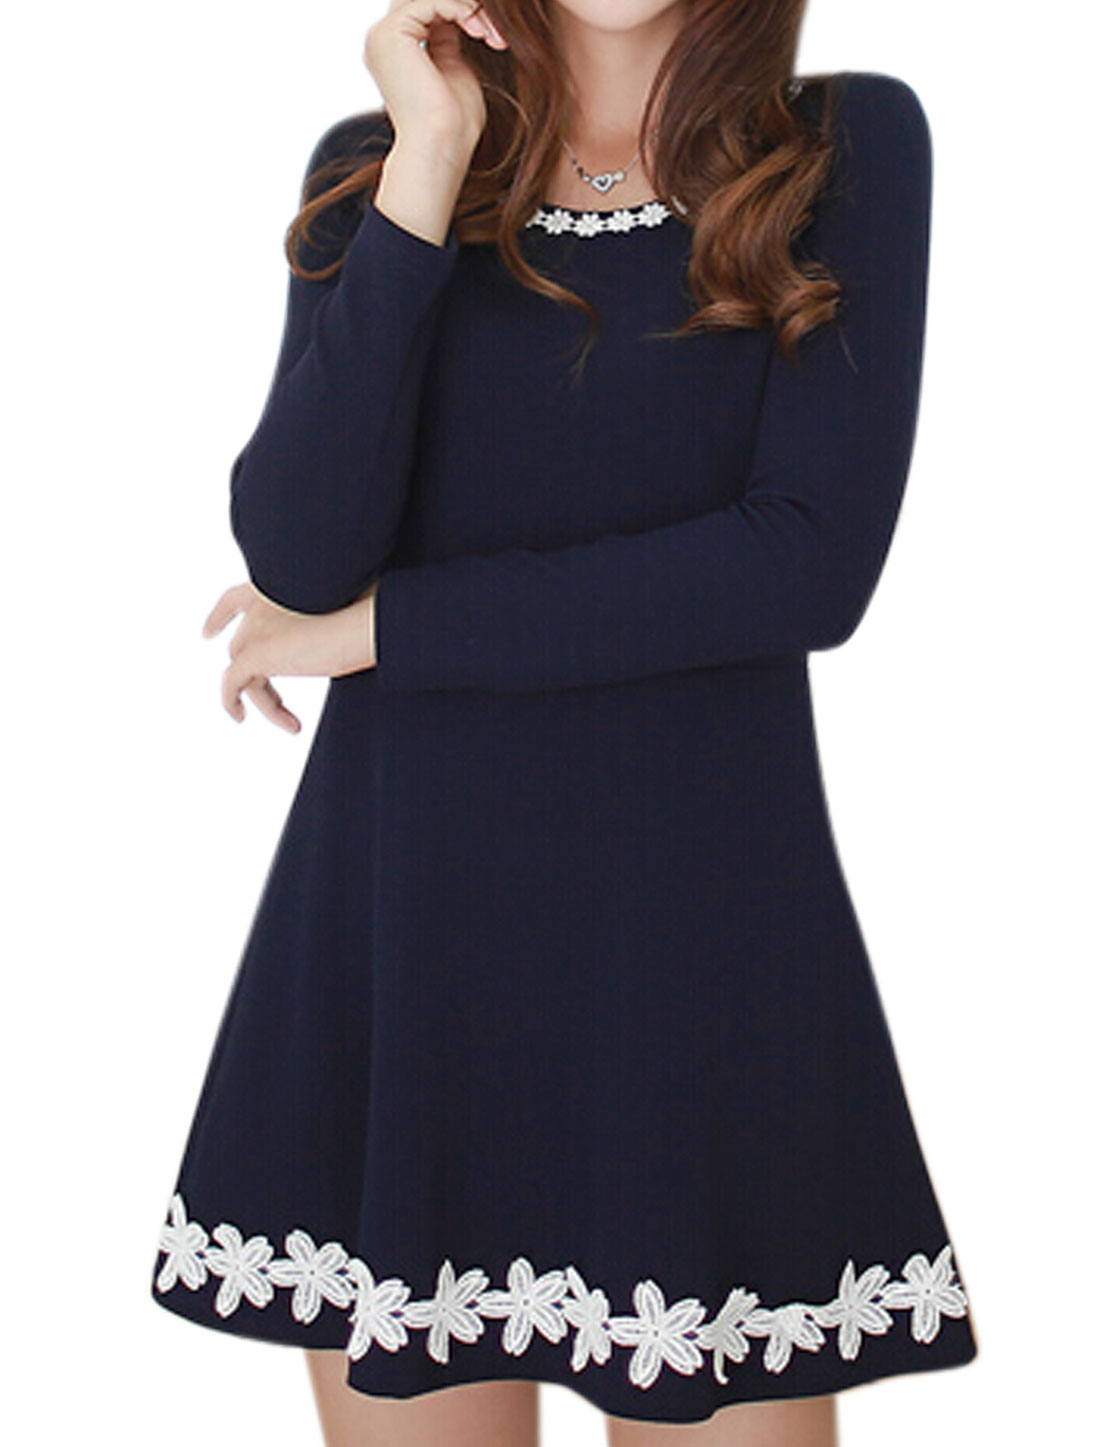 Women Round Neck Long Sleeves Crochet Design Tunic Dress Blue S